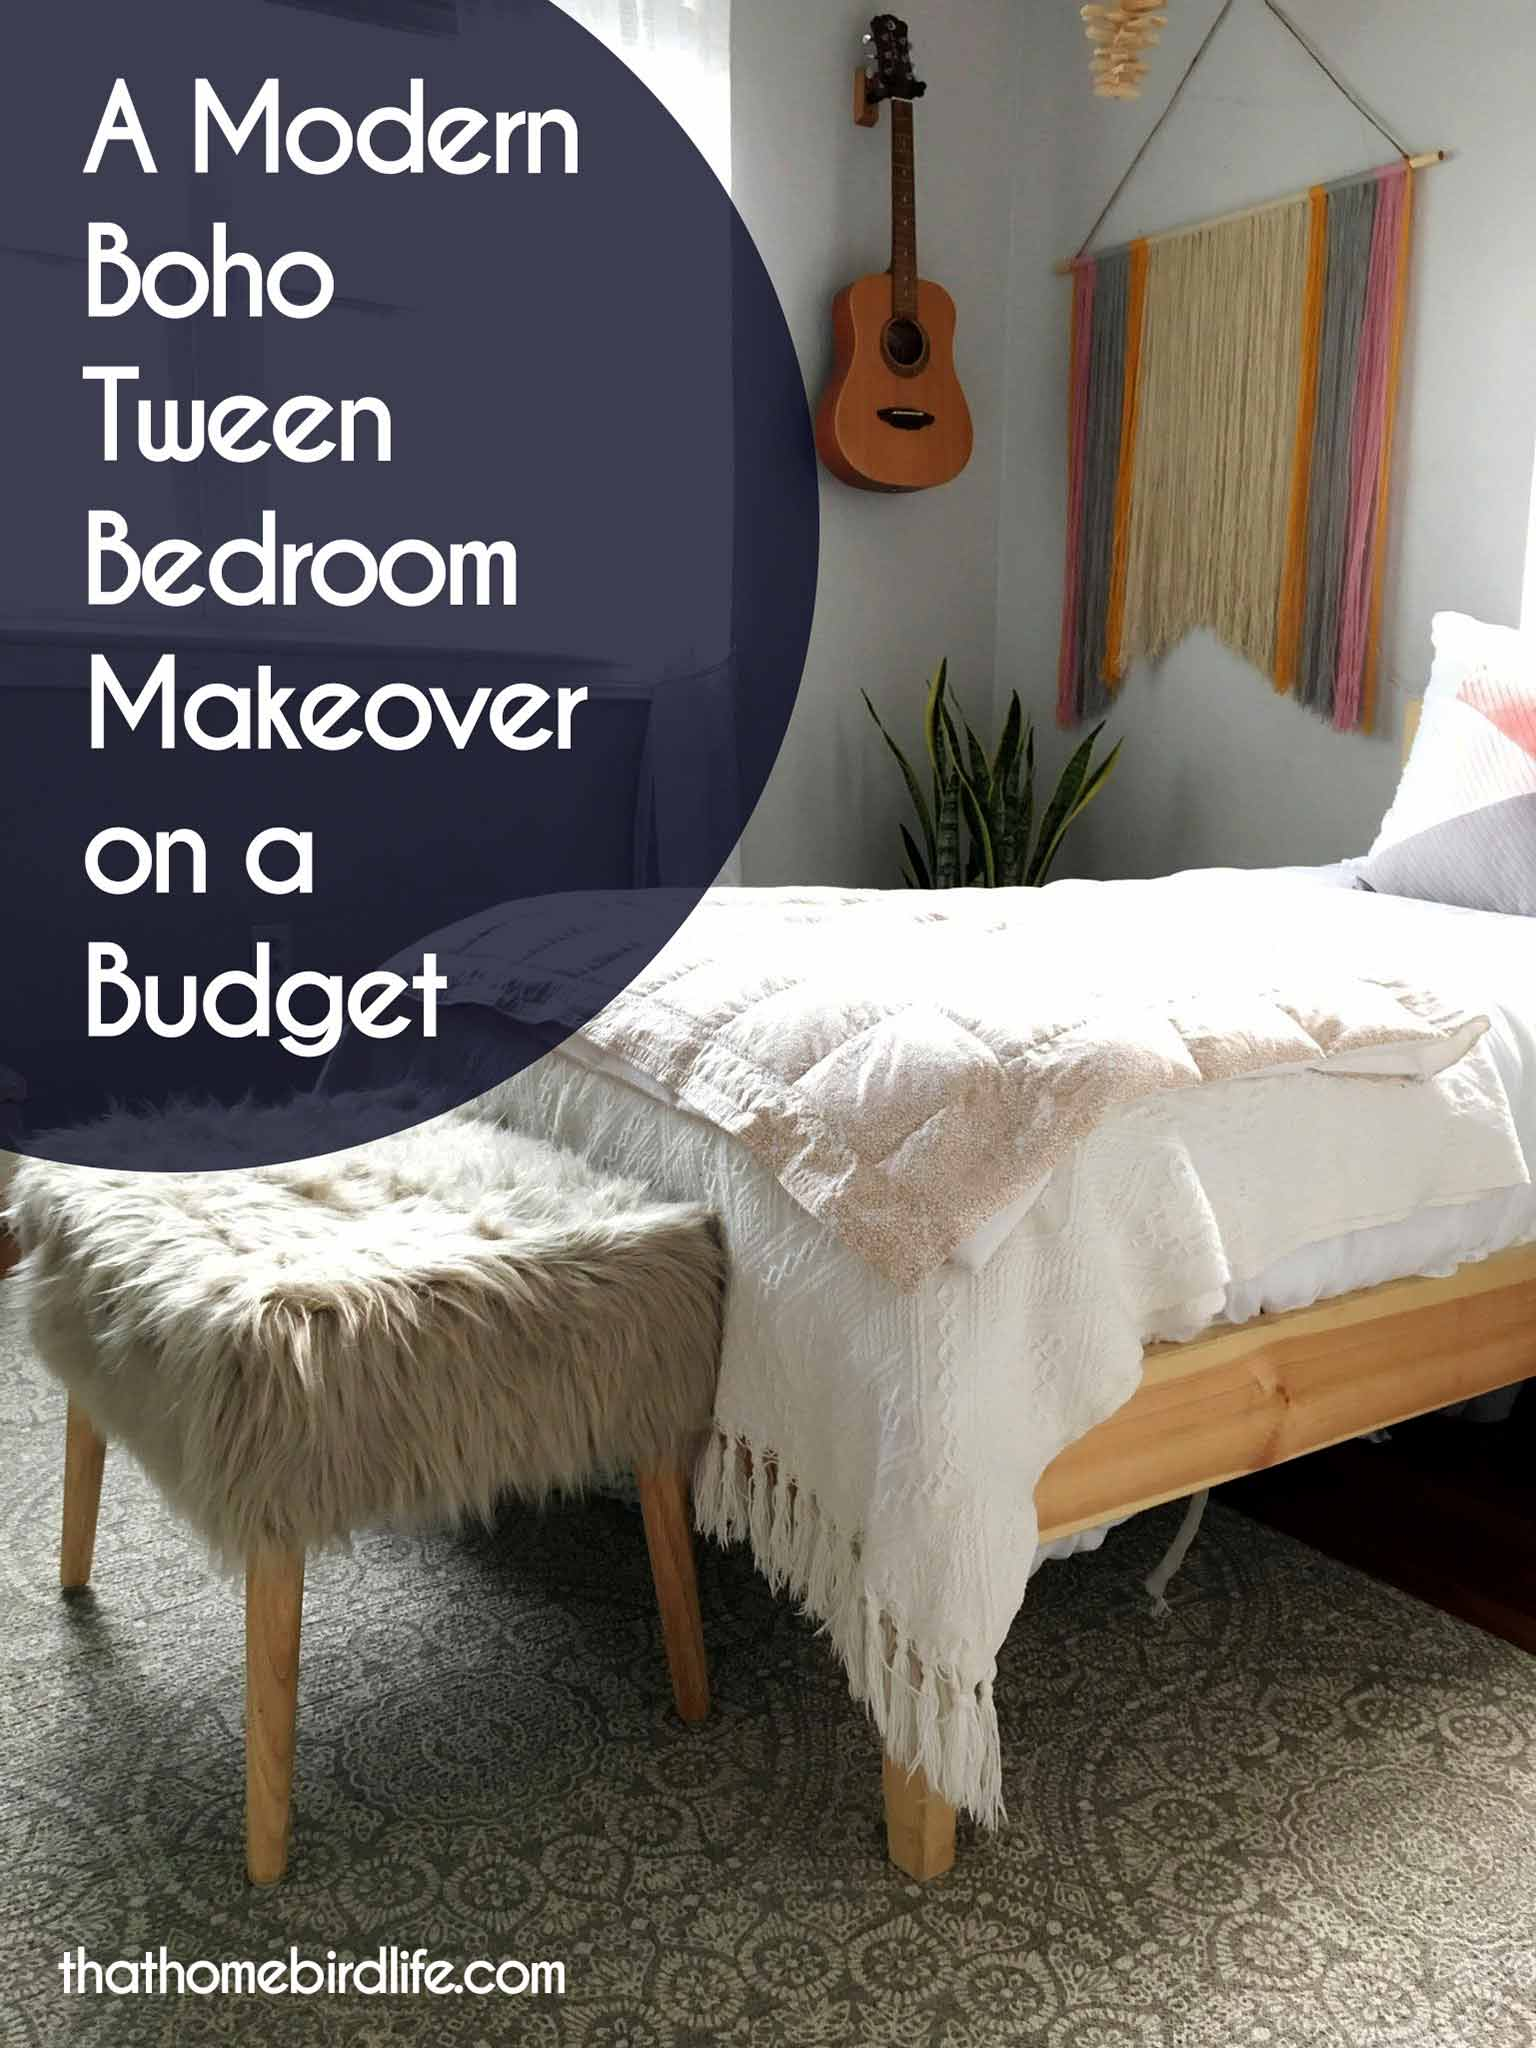 A Modern Boho Tween Bedroom Makeover On A Budget   That Homebird Life Blog